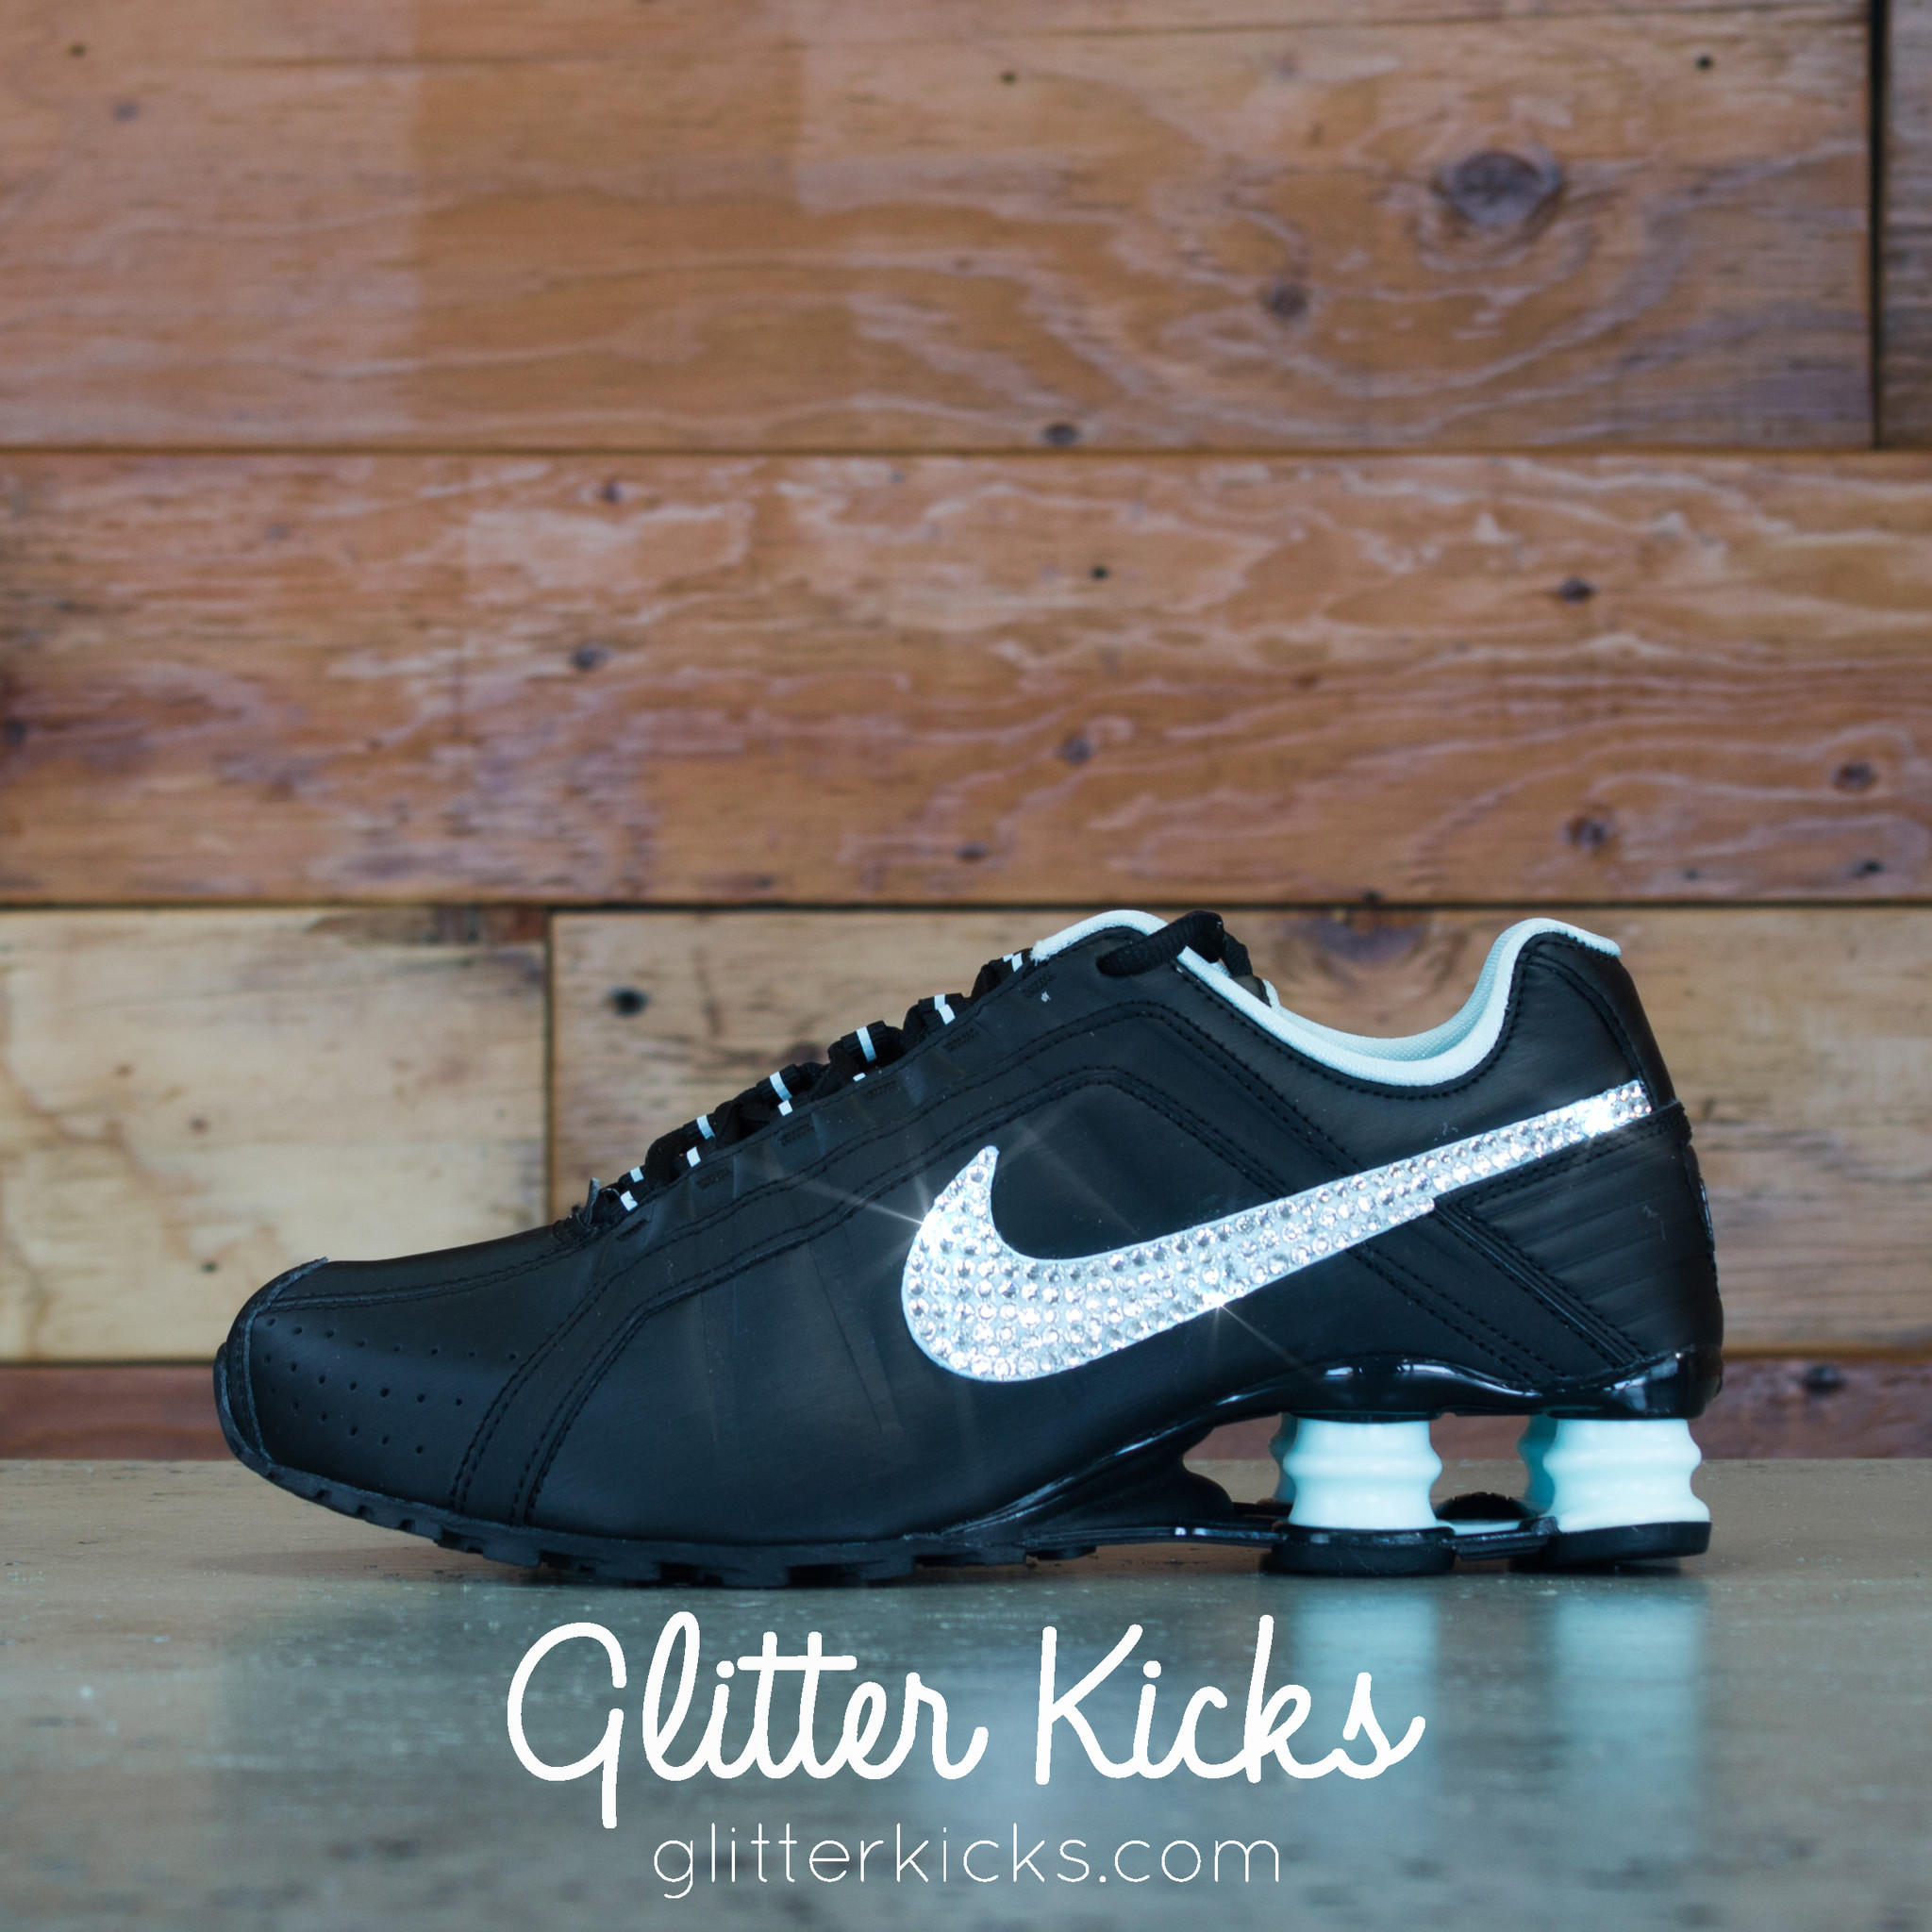 Nike Shox Current Glitter Kicks Running from Glitter Kicks d1a365cbc